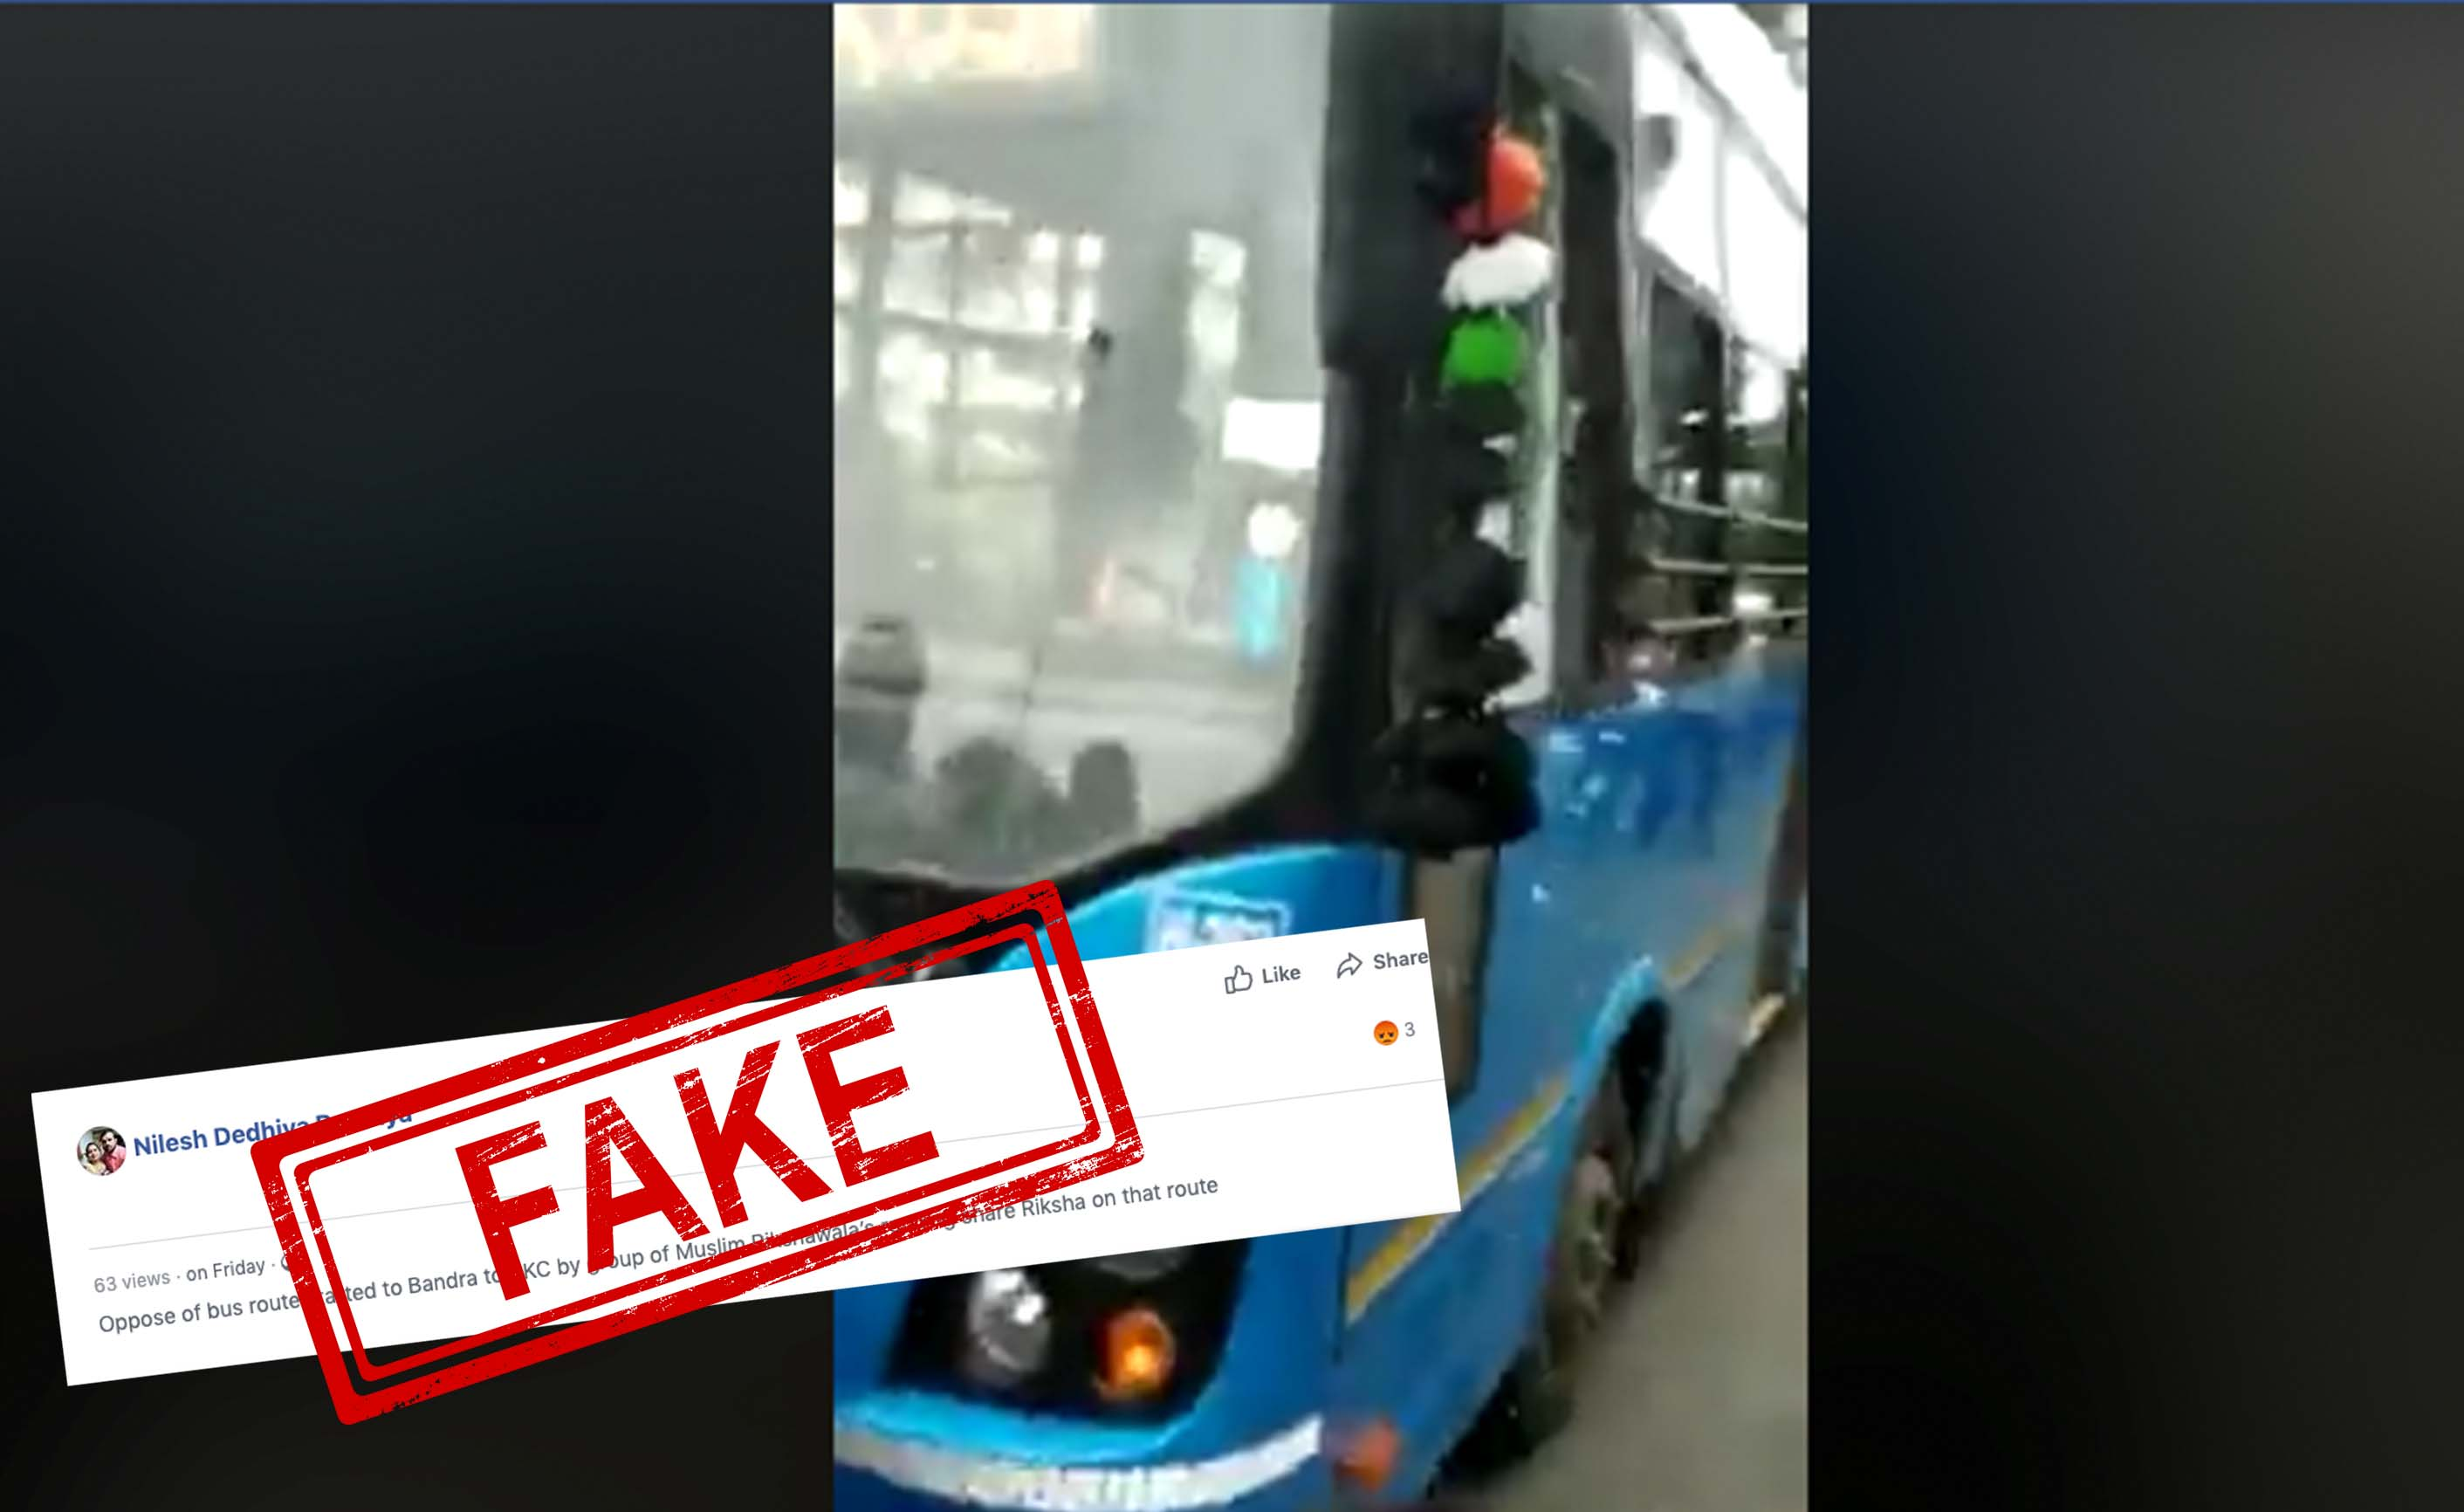 vandalise, Bus, Mumbai, Gujarat, Surat, Video, Mob, FAKE, Fact Check, Fact Checker, NewsMobile, Mobile, News, India